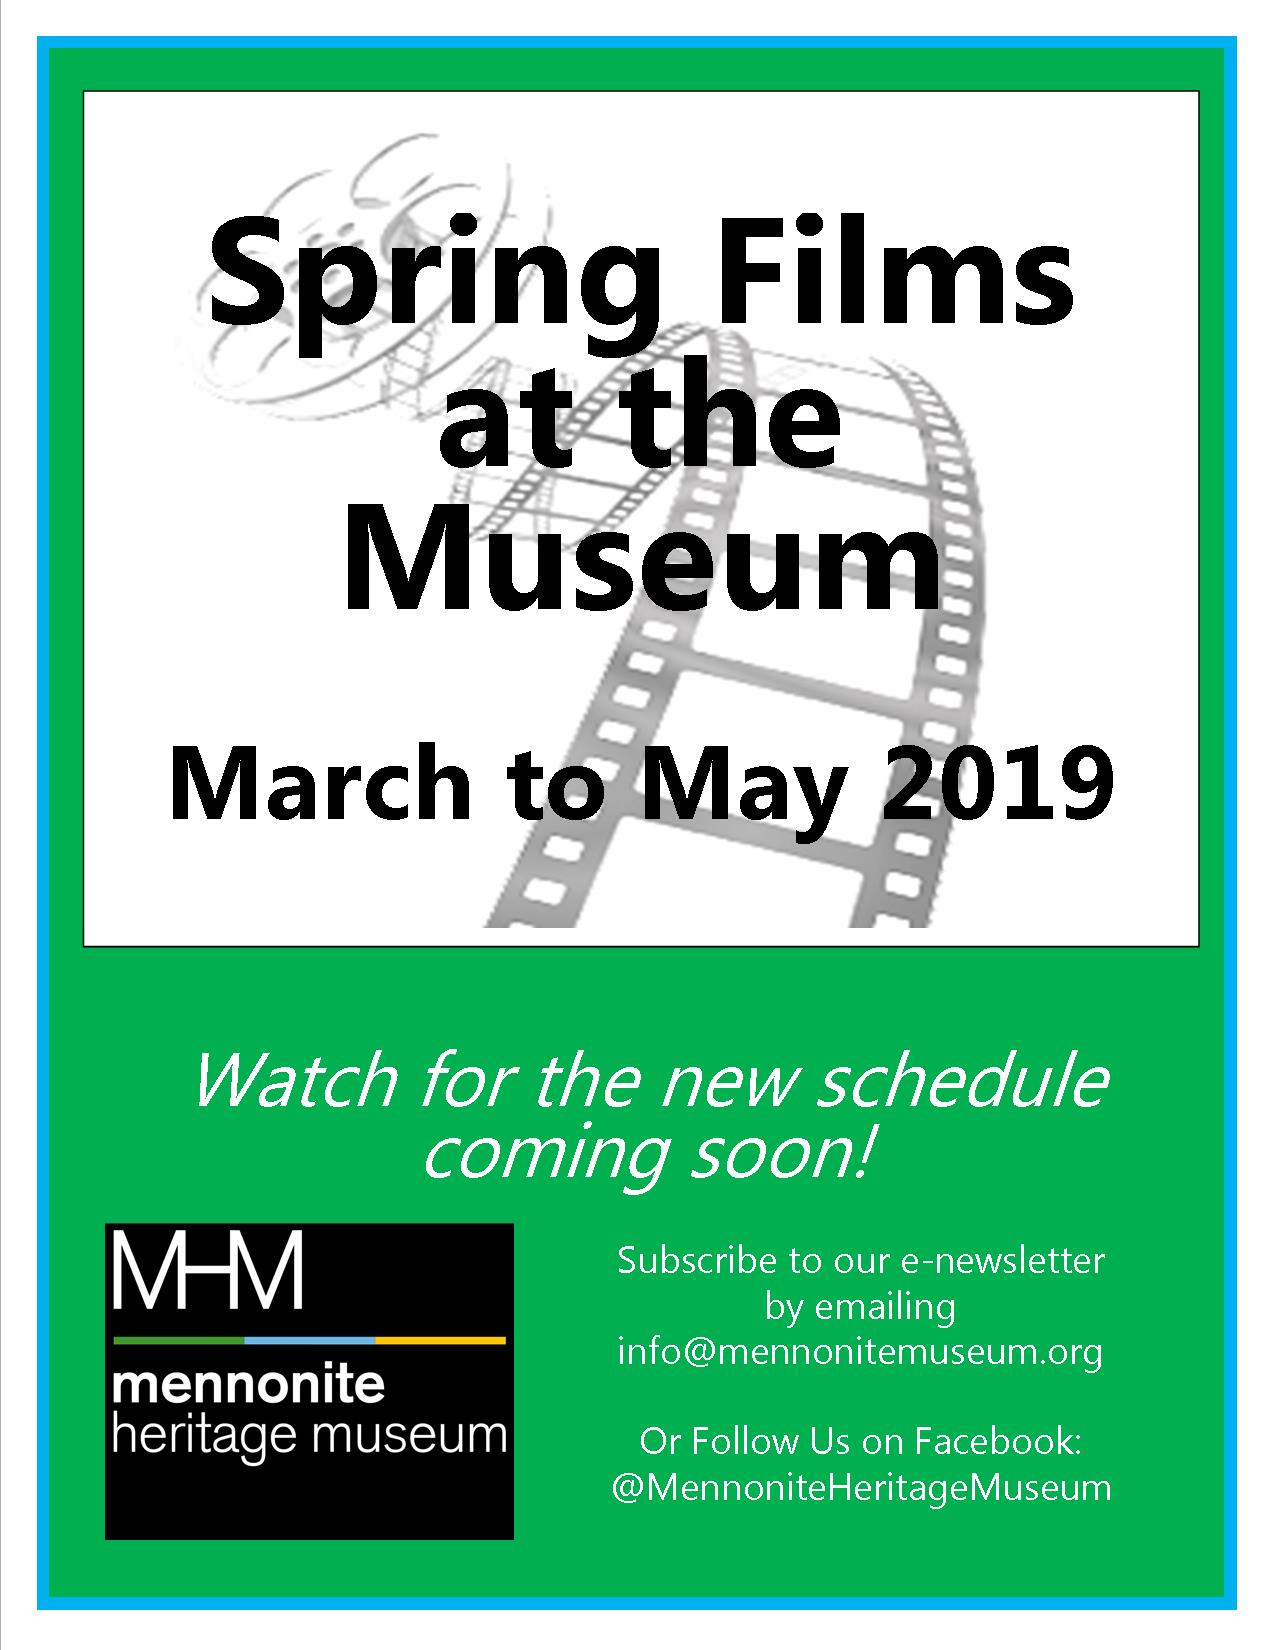 Spring Films at the Museum